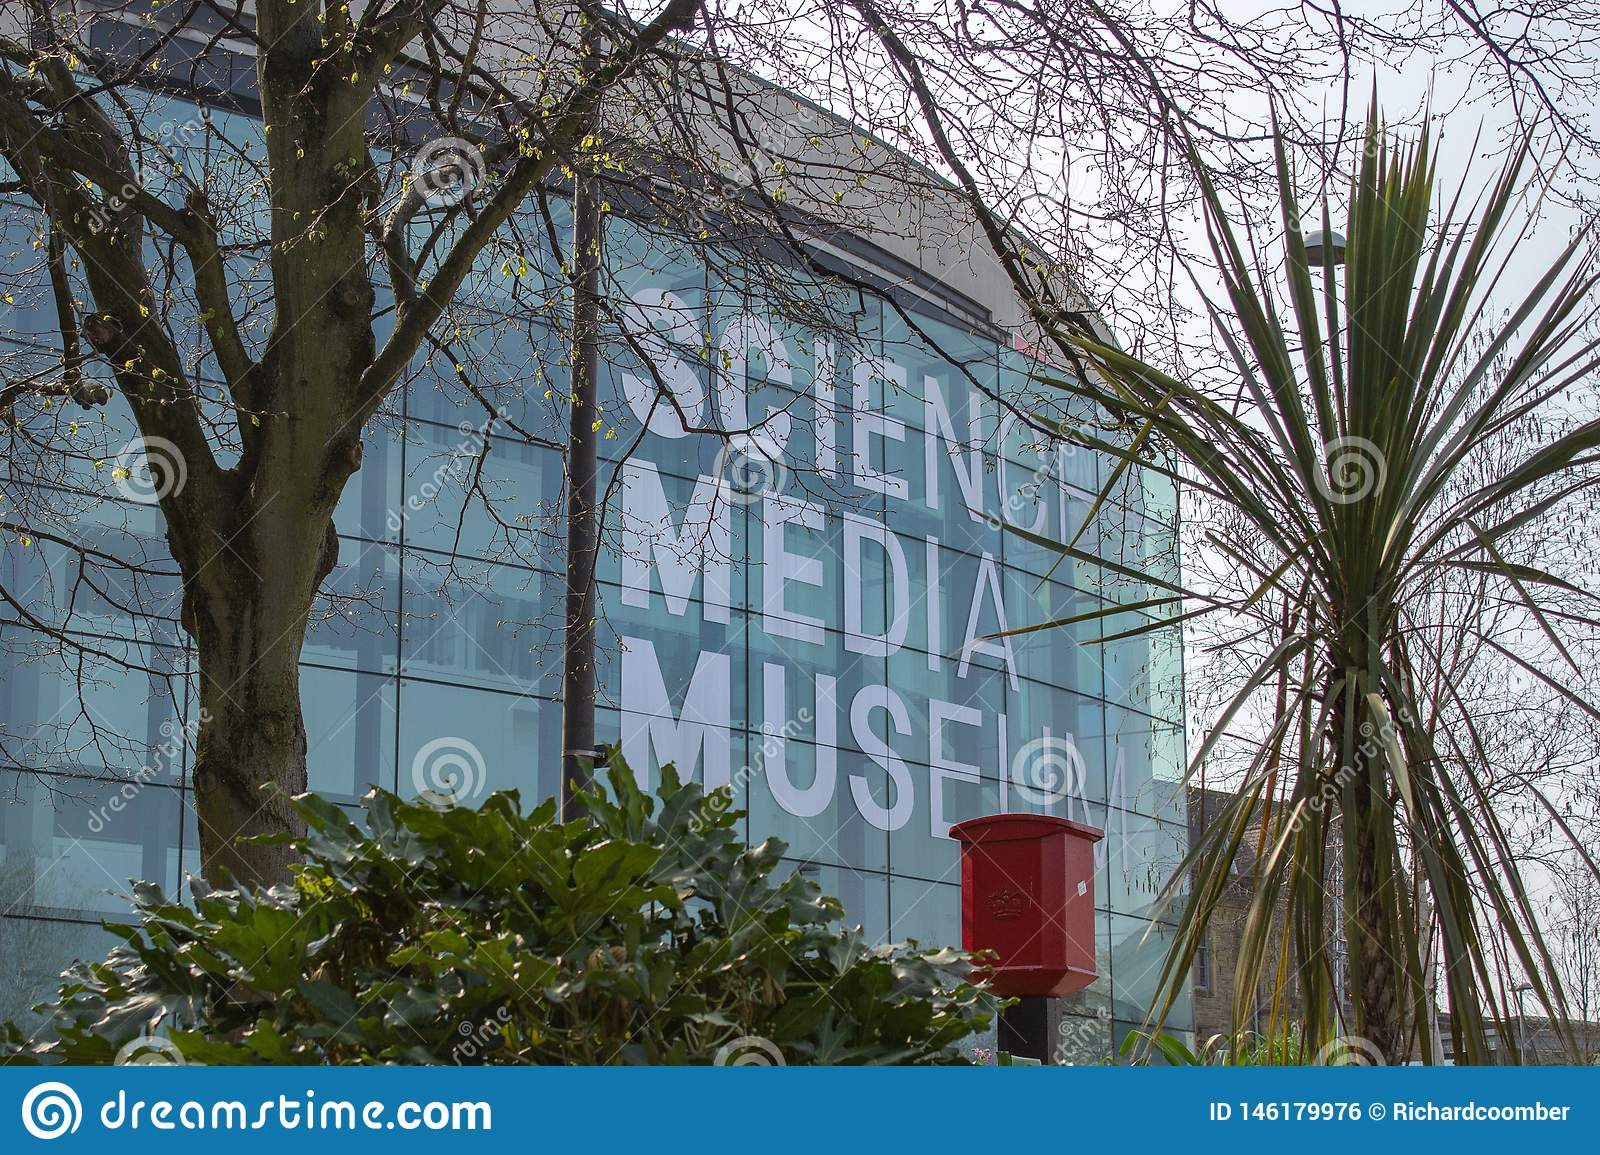 Bradford museum acclaimed by the critics